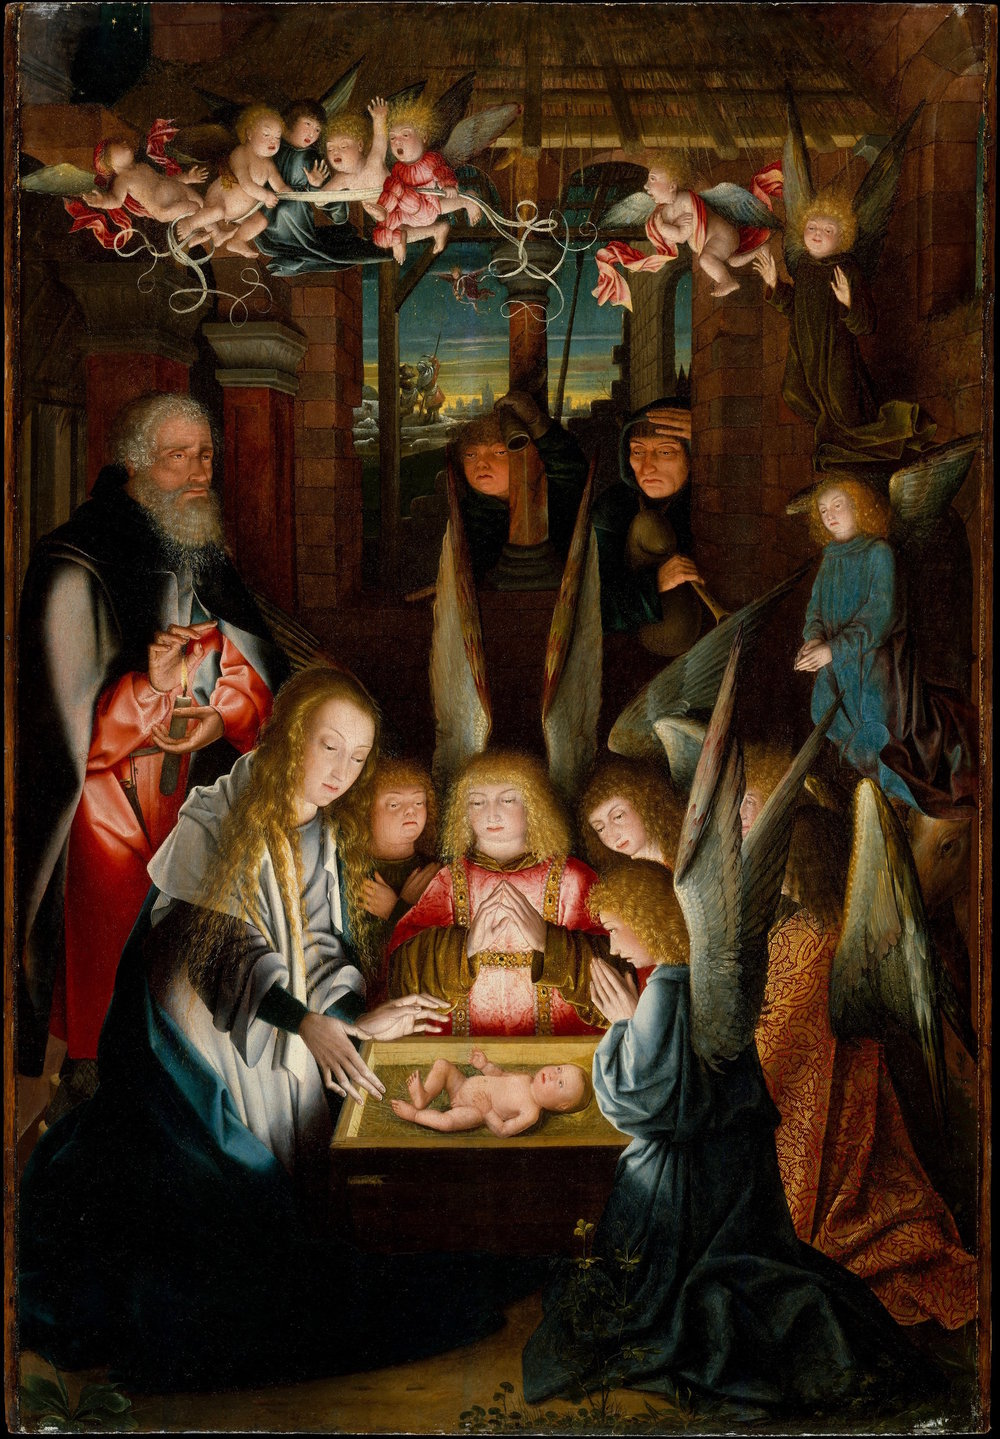 Follower of Jan Joest of Kalkar (fl. 1515), The Adoration of the Christ Child, Metropolitan Museum of Art, New York.